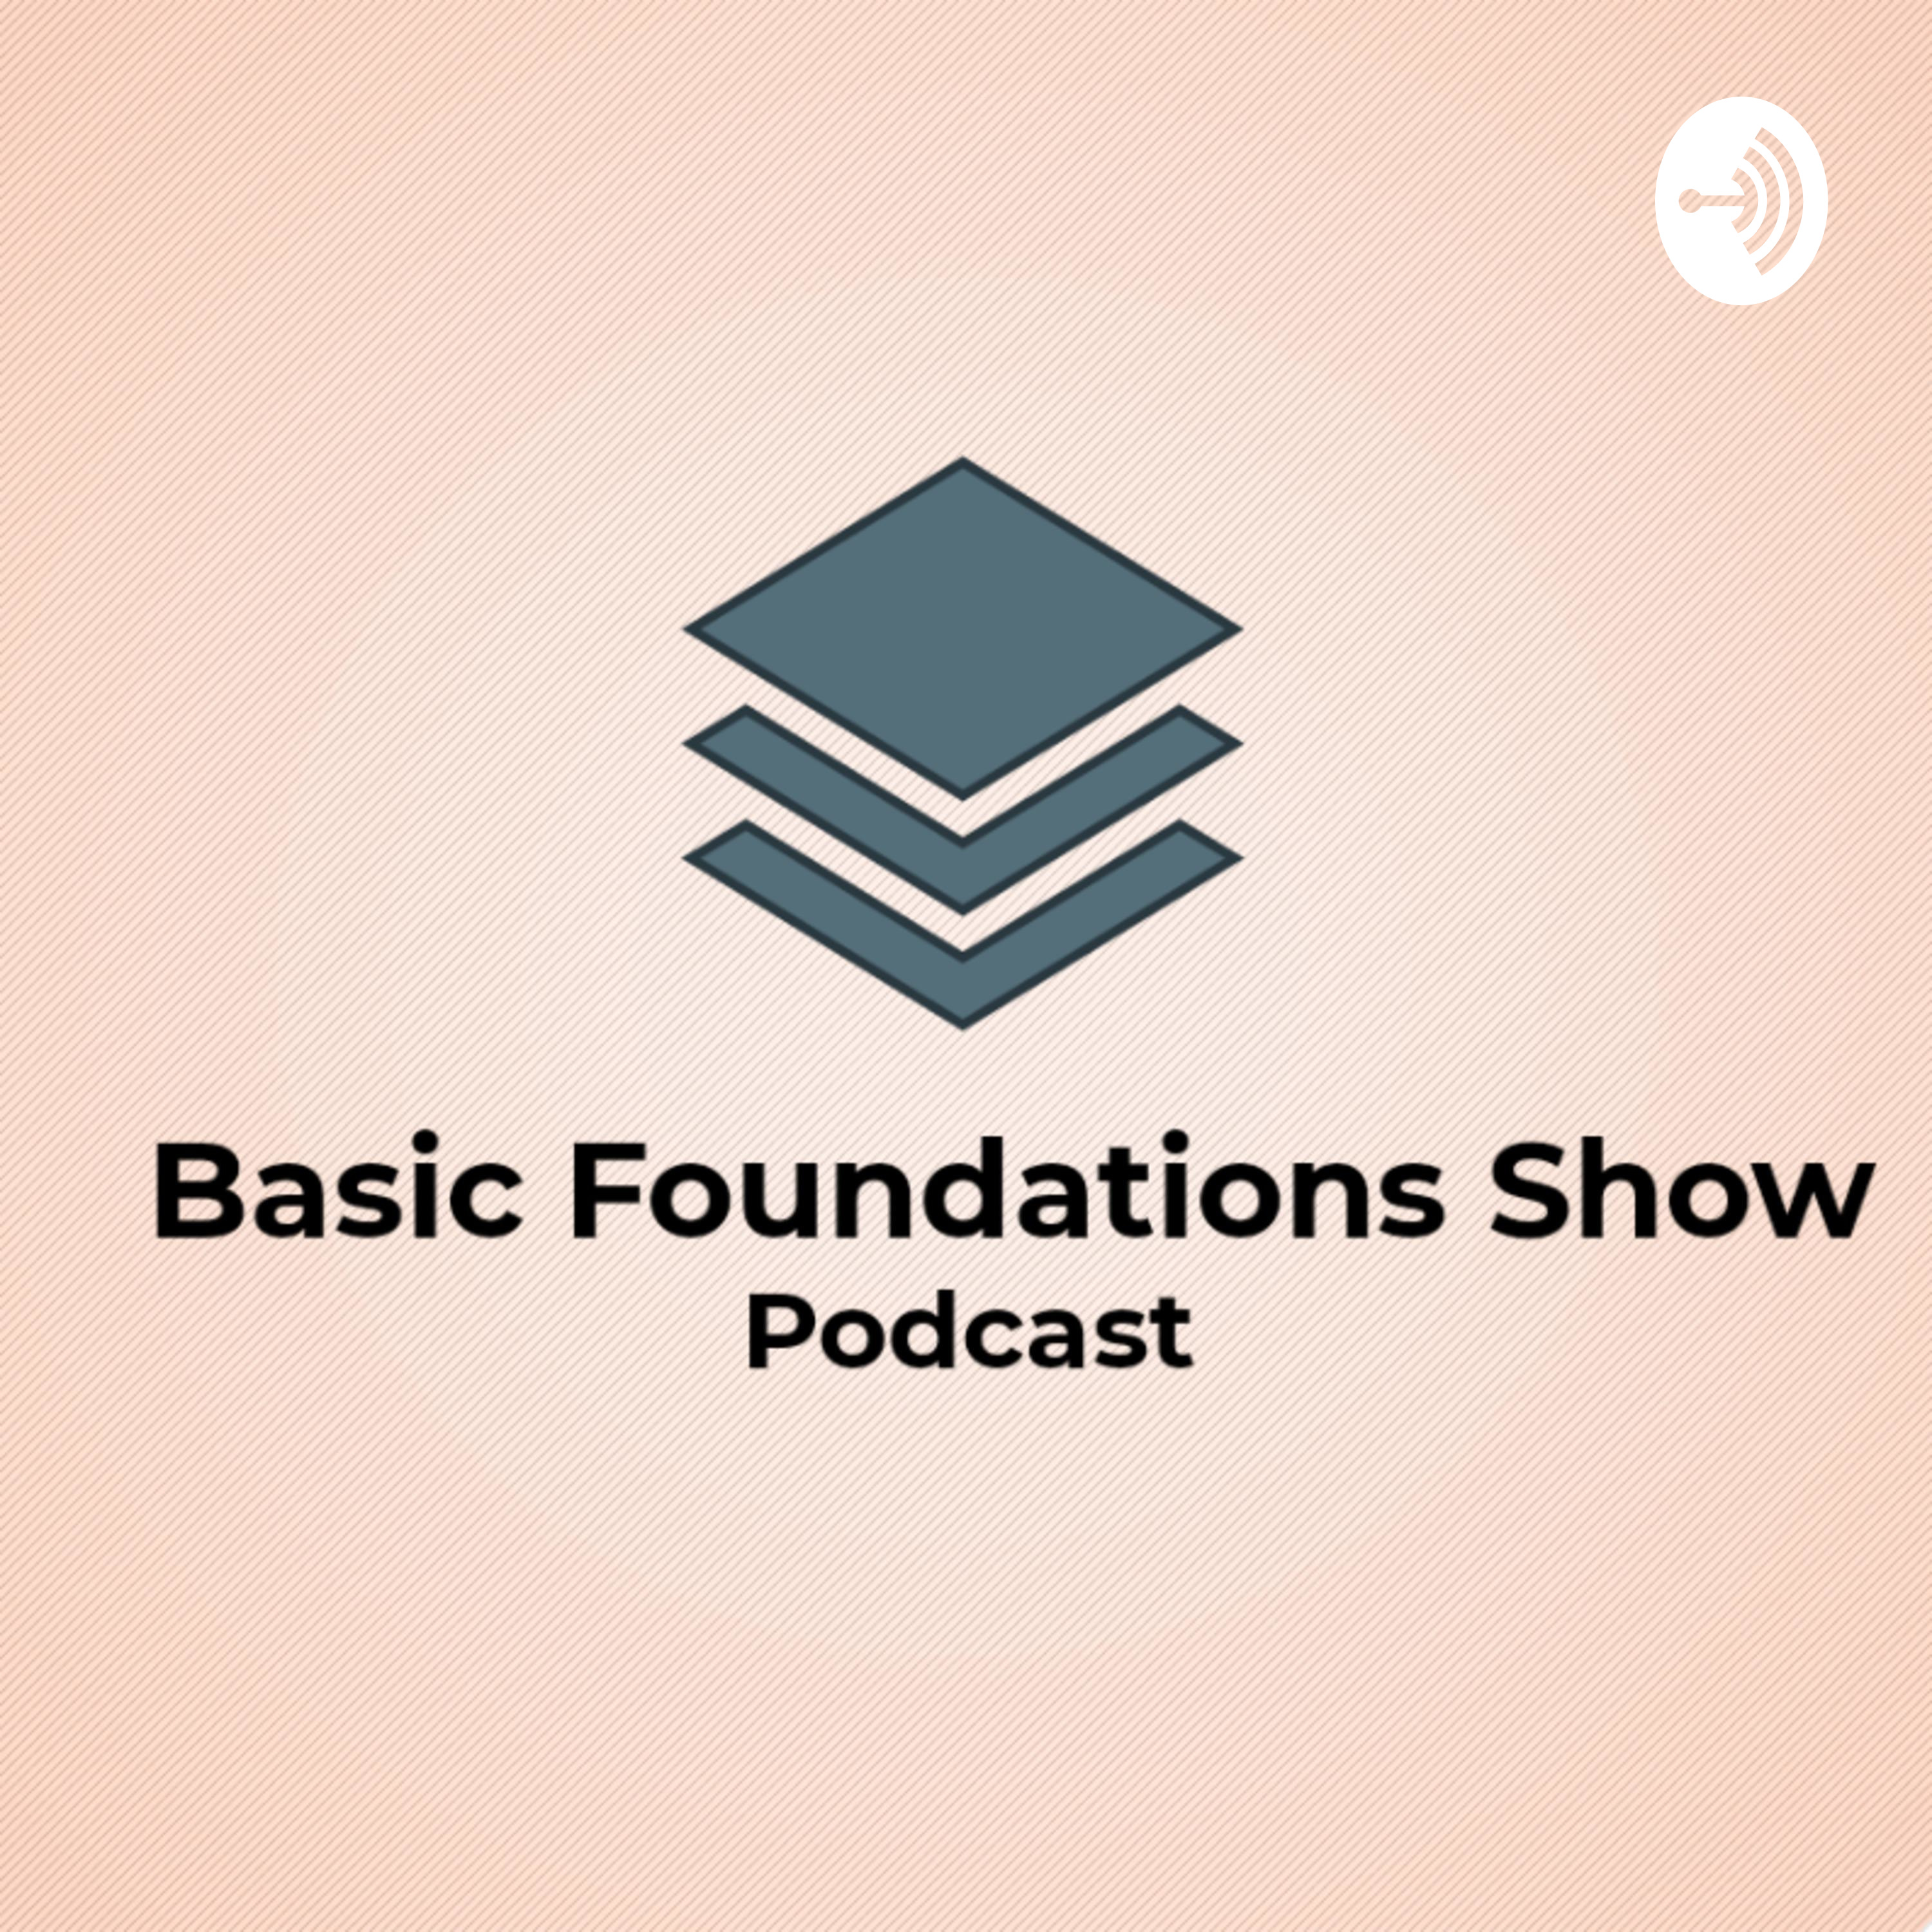 Basic Foundations Show- Making It In the Industry